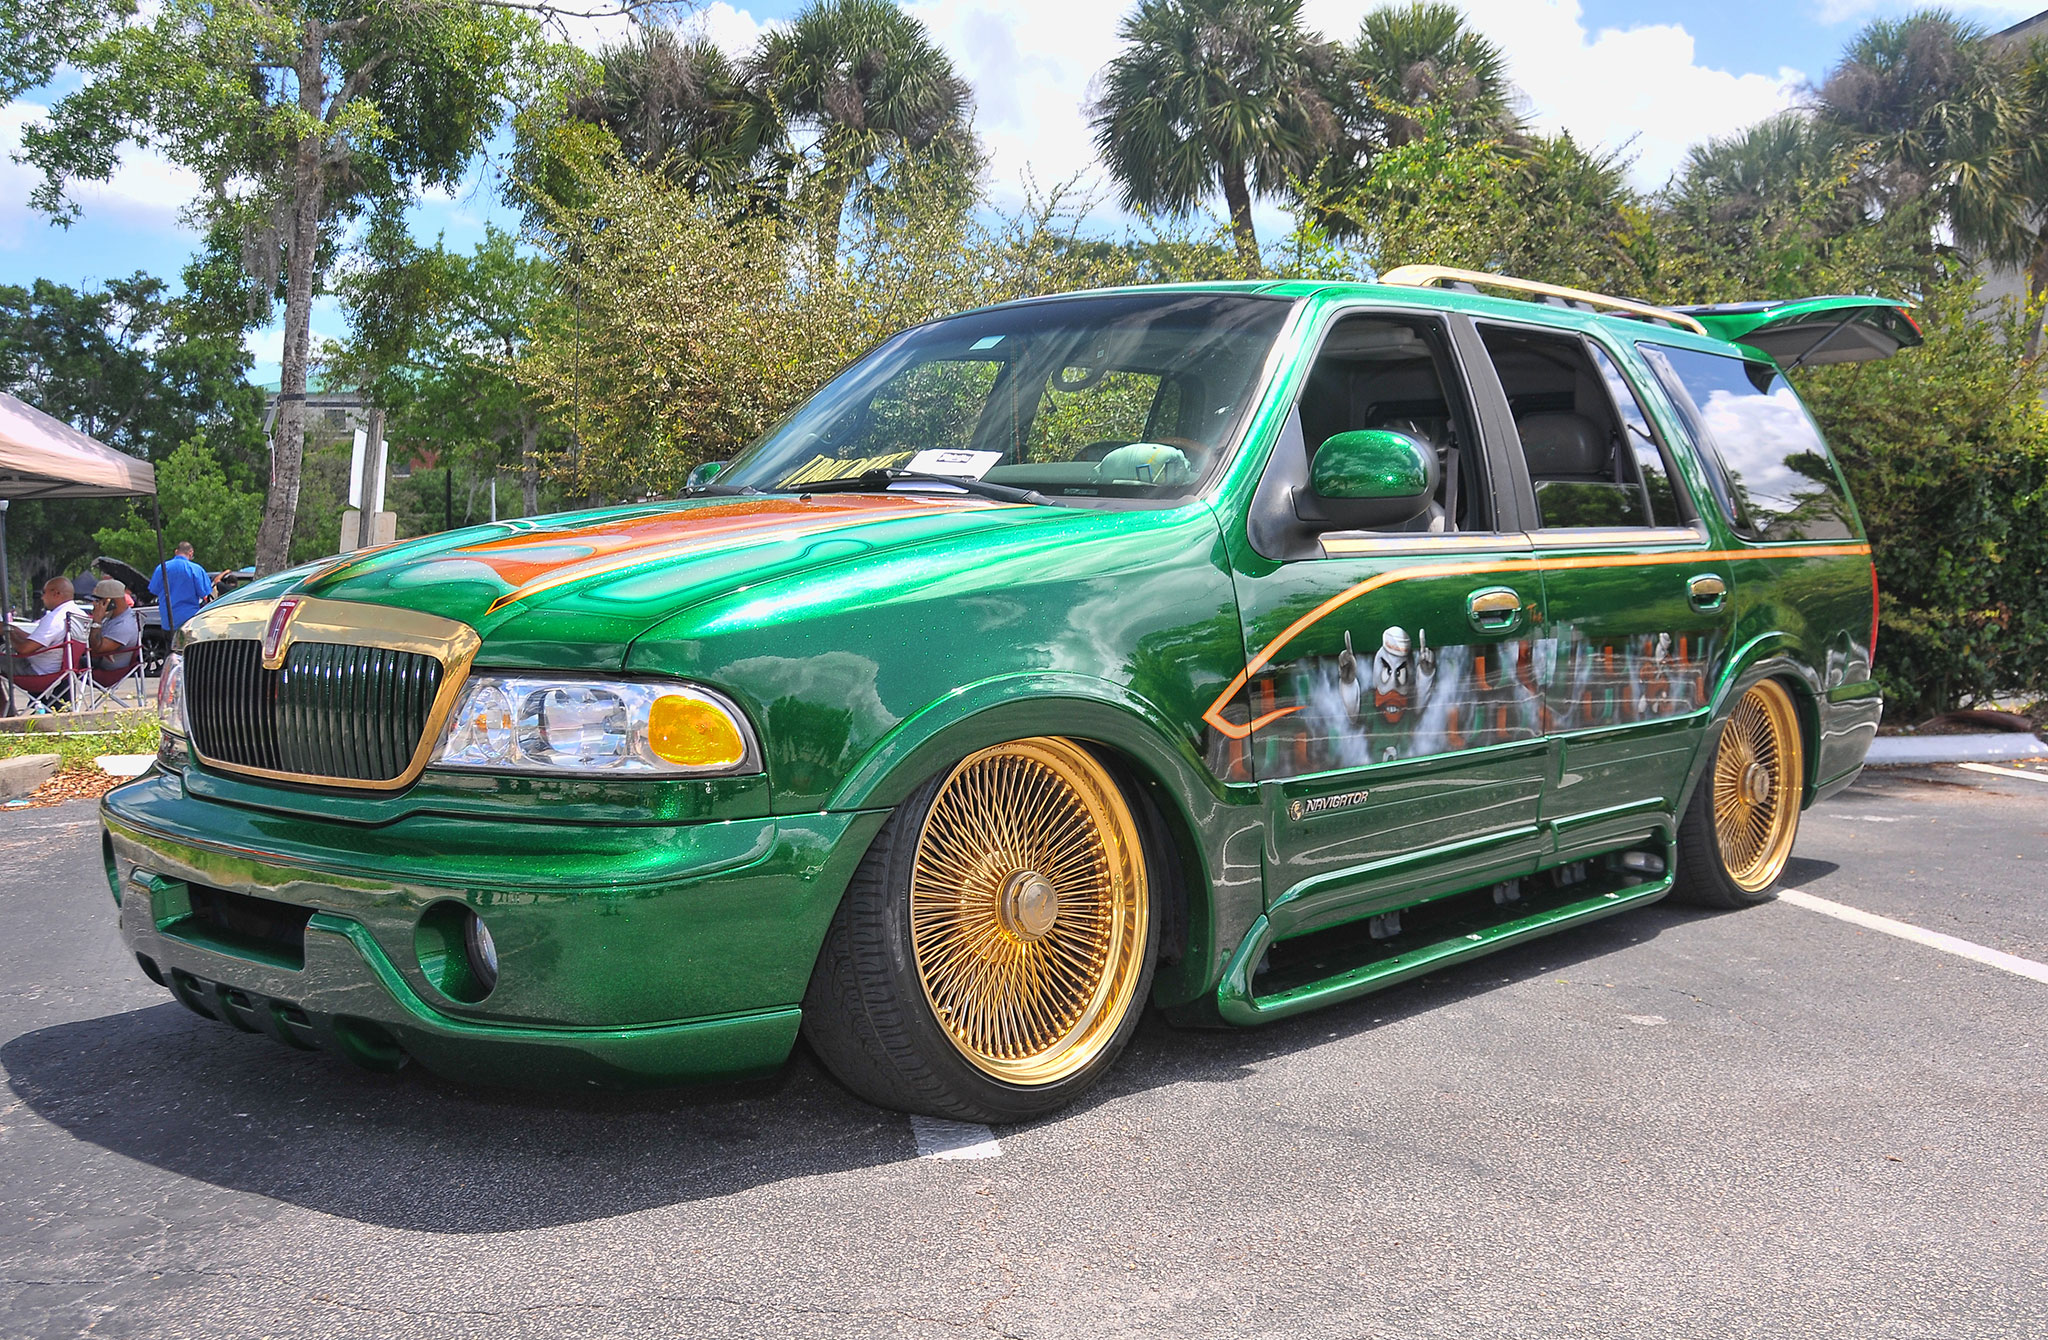 Majesticsthannualcarshowlincolnnavigator Lowrider - Lincoln car show